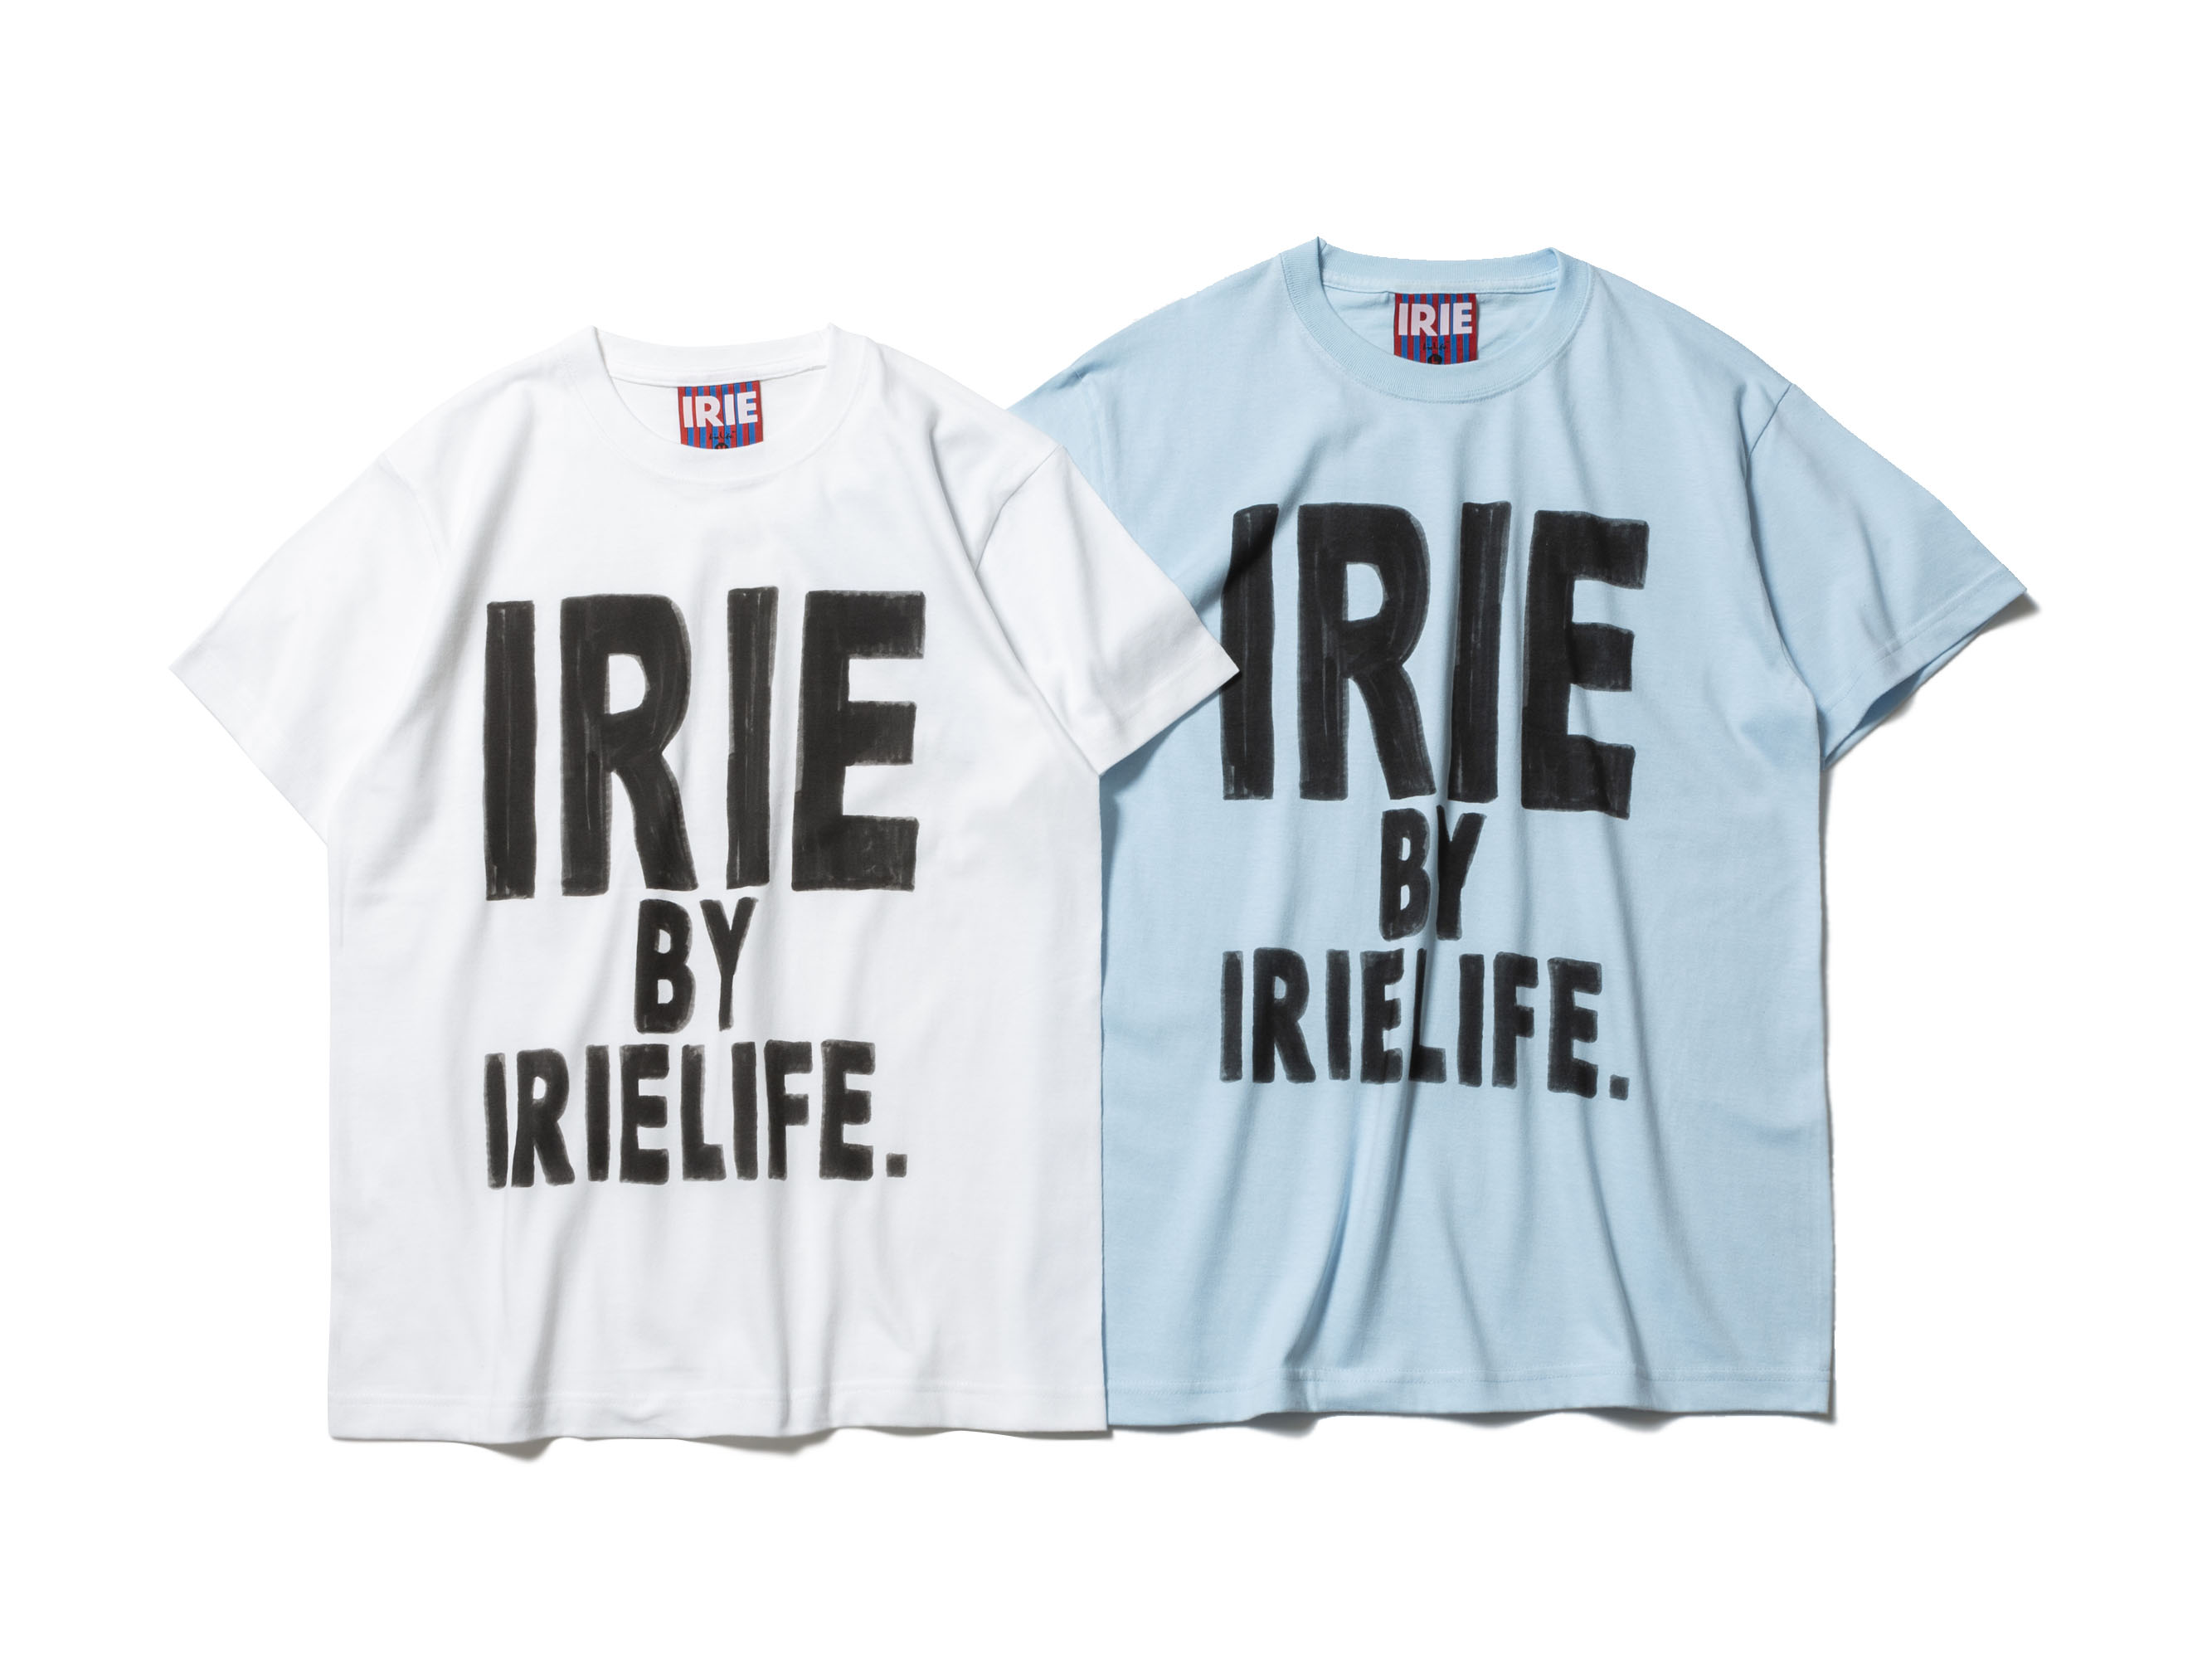 【20% OFF】BLEEDING LOGO TEE -IRIE by irielife-